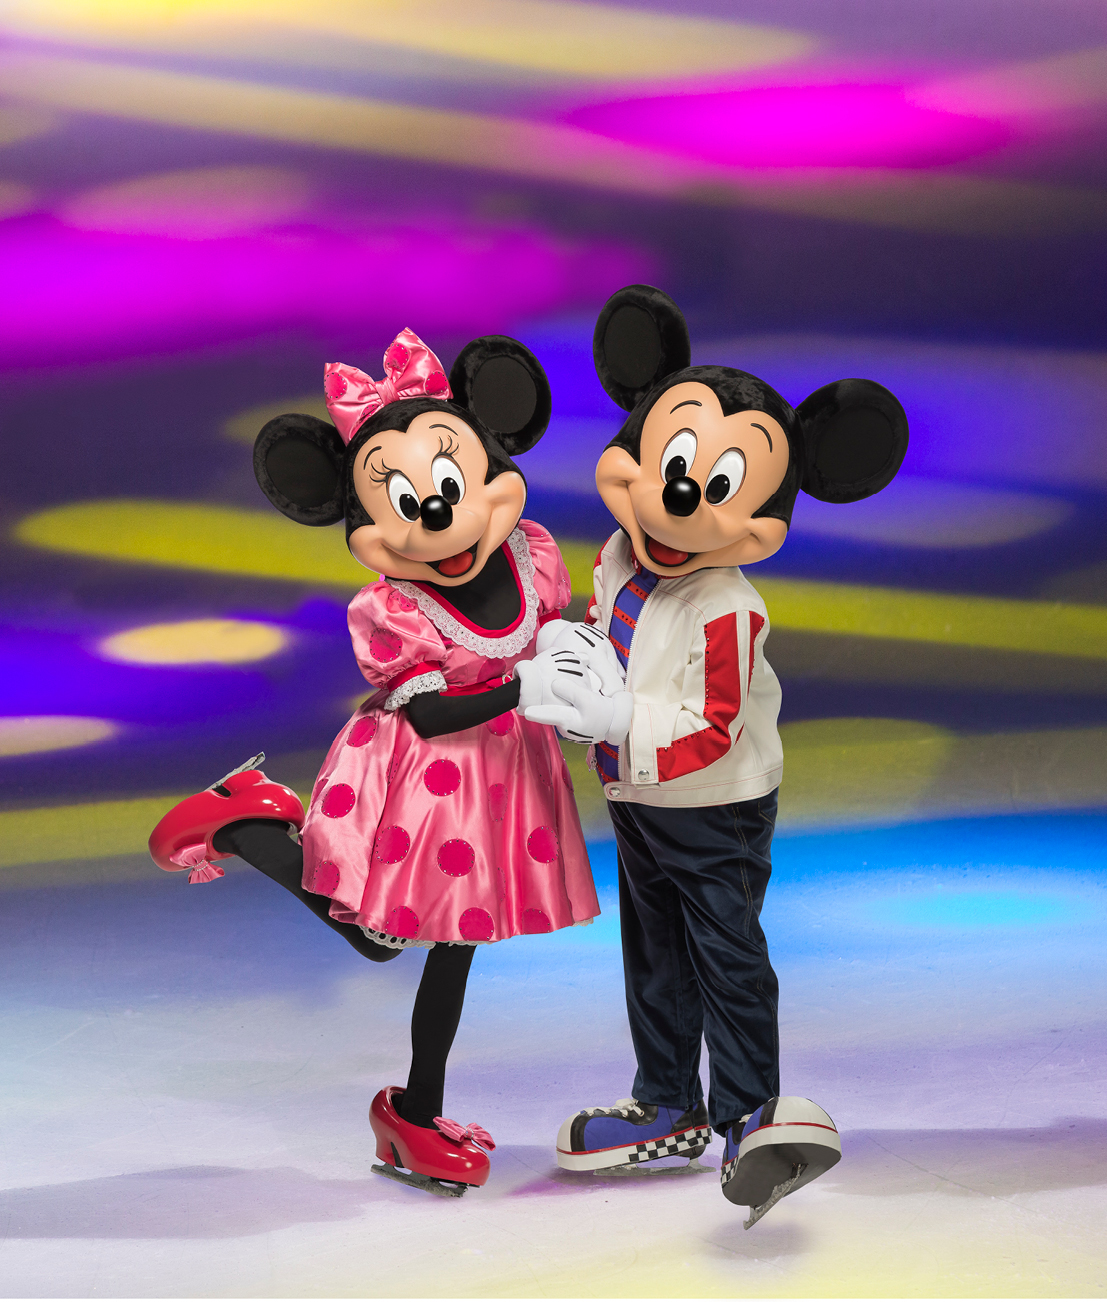 Mickey and Minnie holding hands and skating on ice